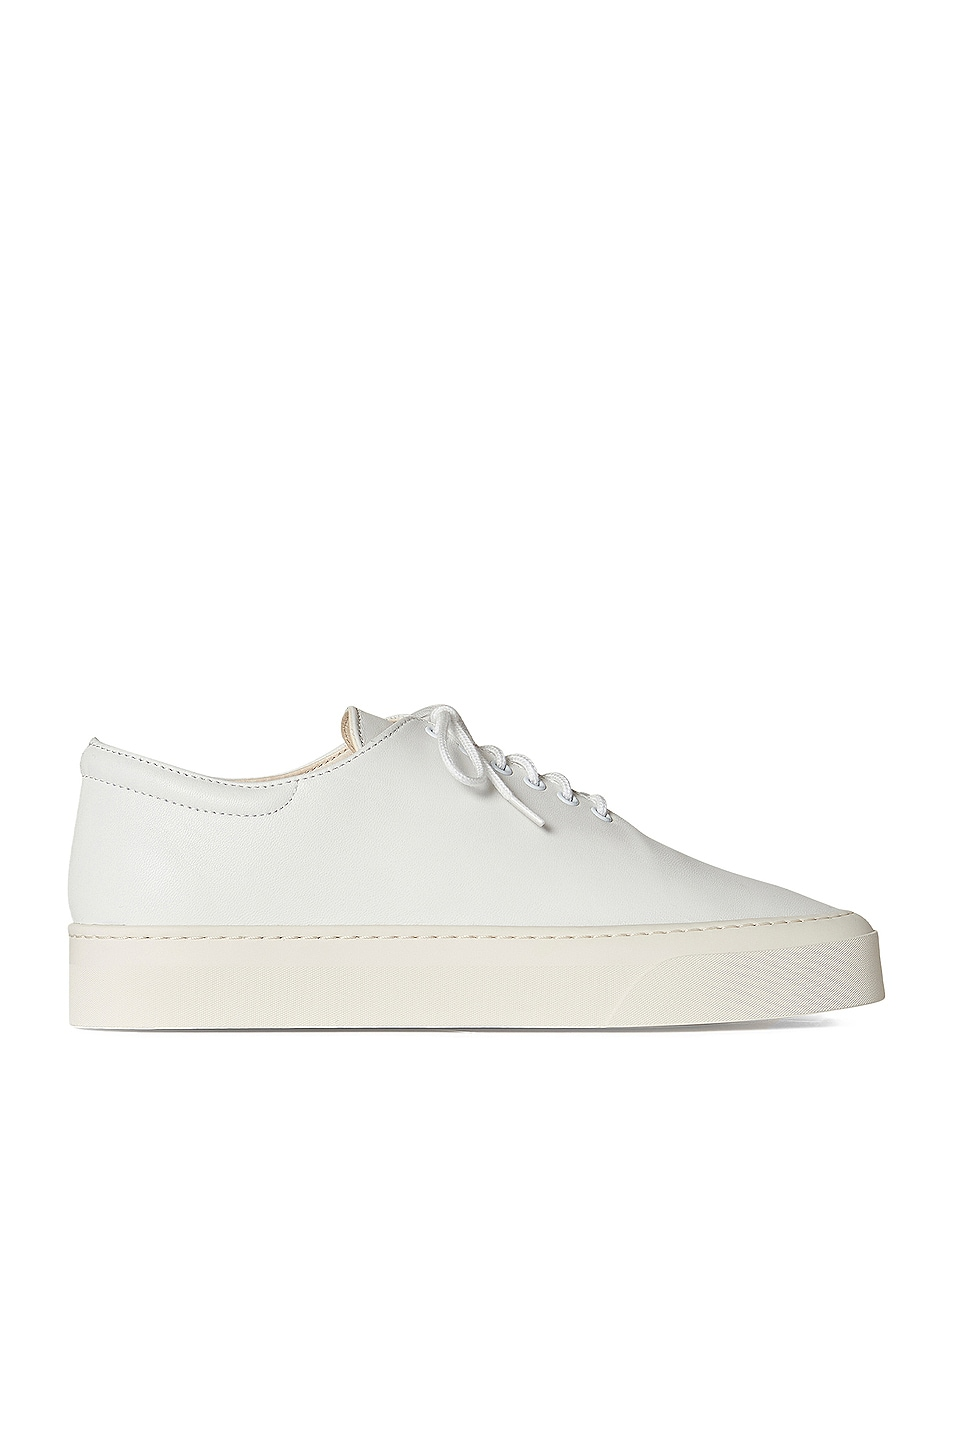 Image 1 of The Row Marie H Lace Up Leather Sneakers in Snow